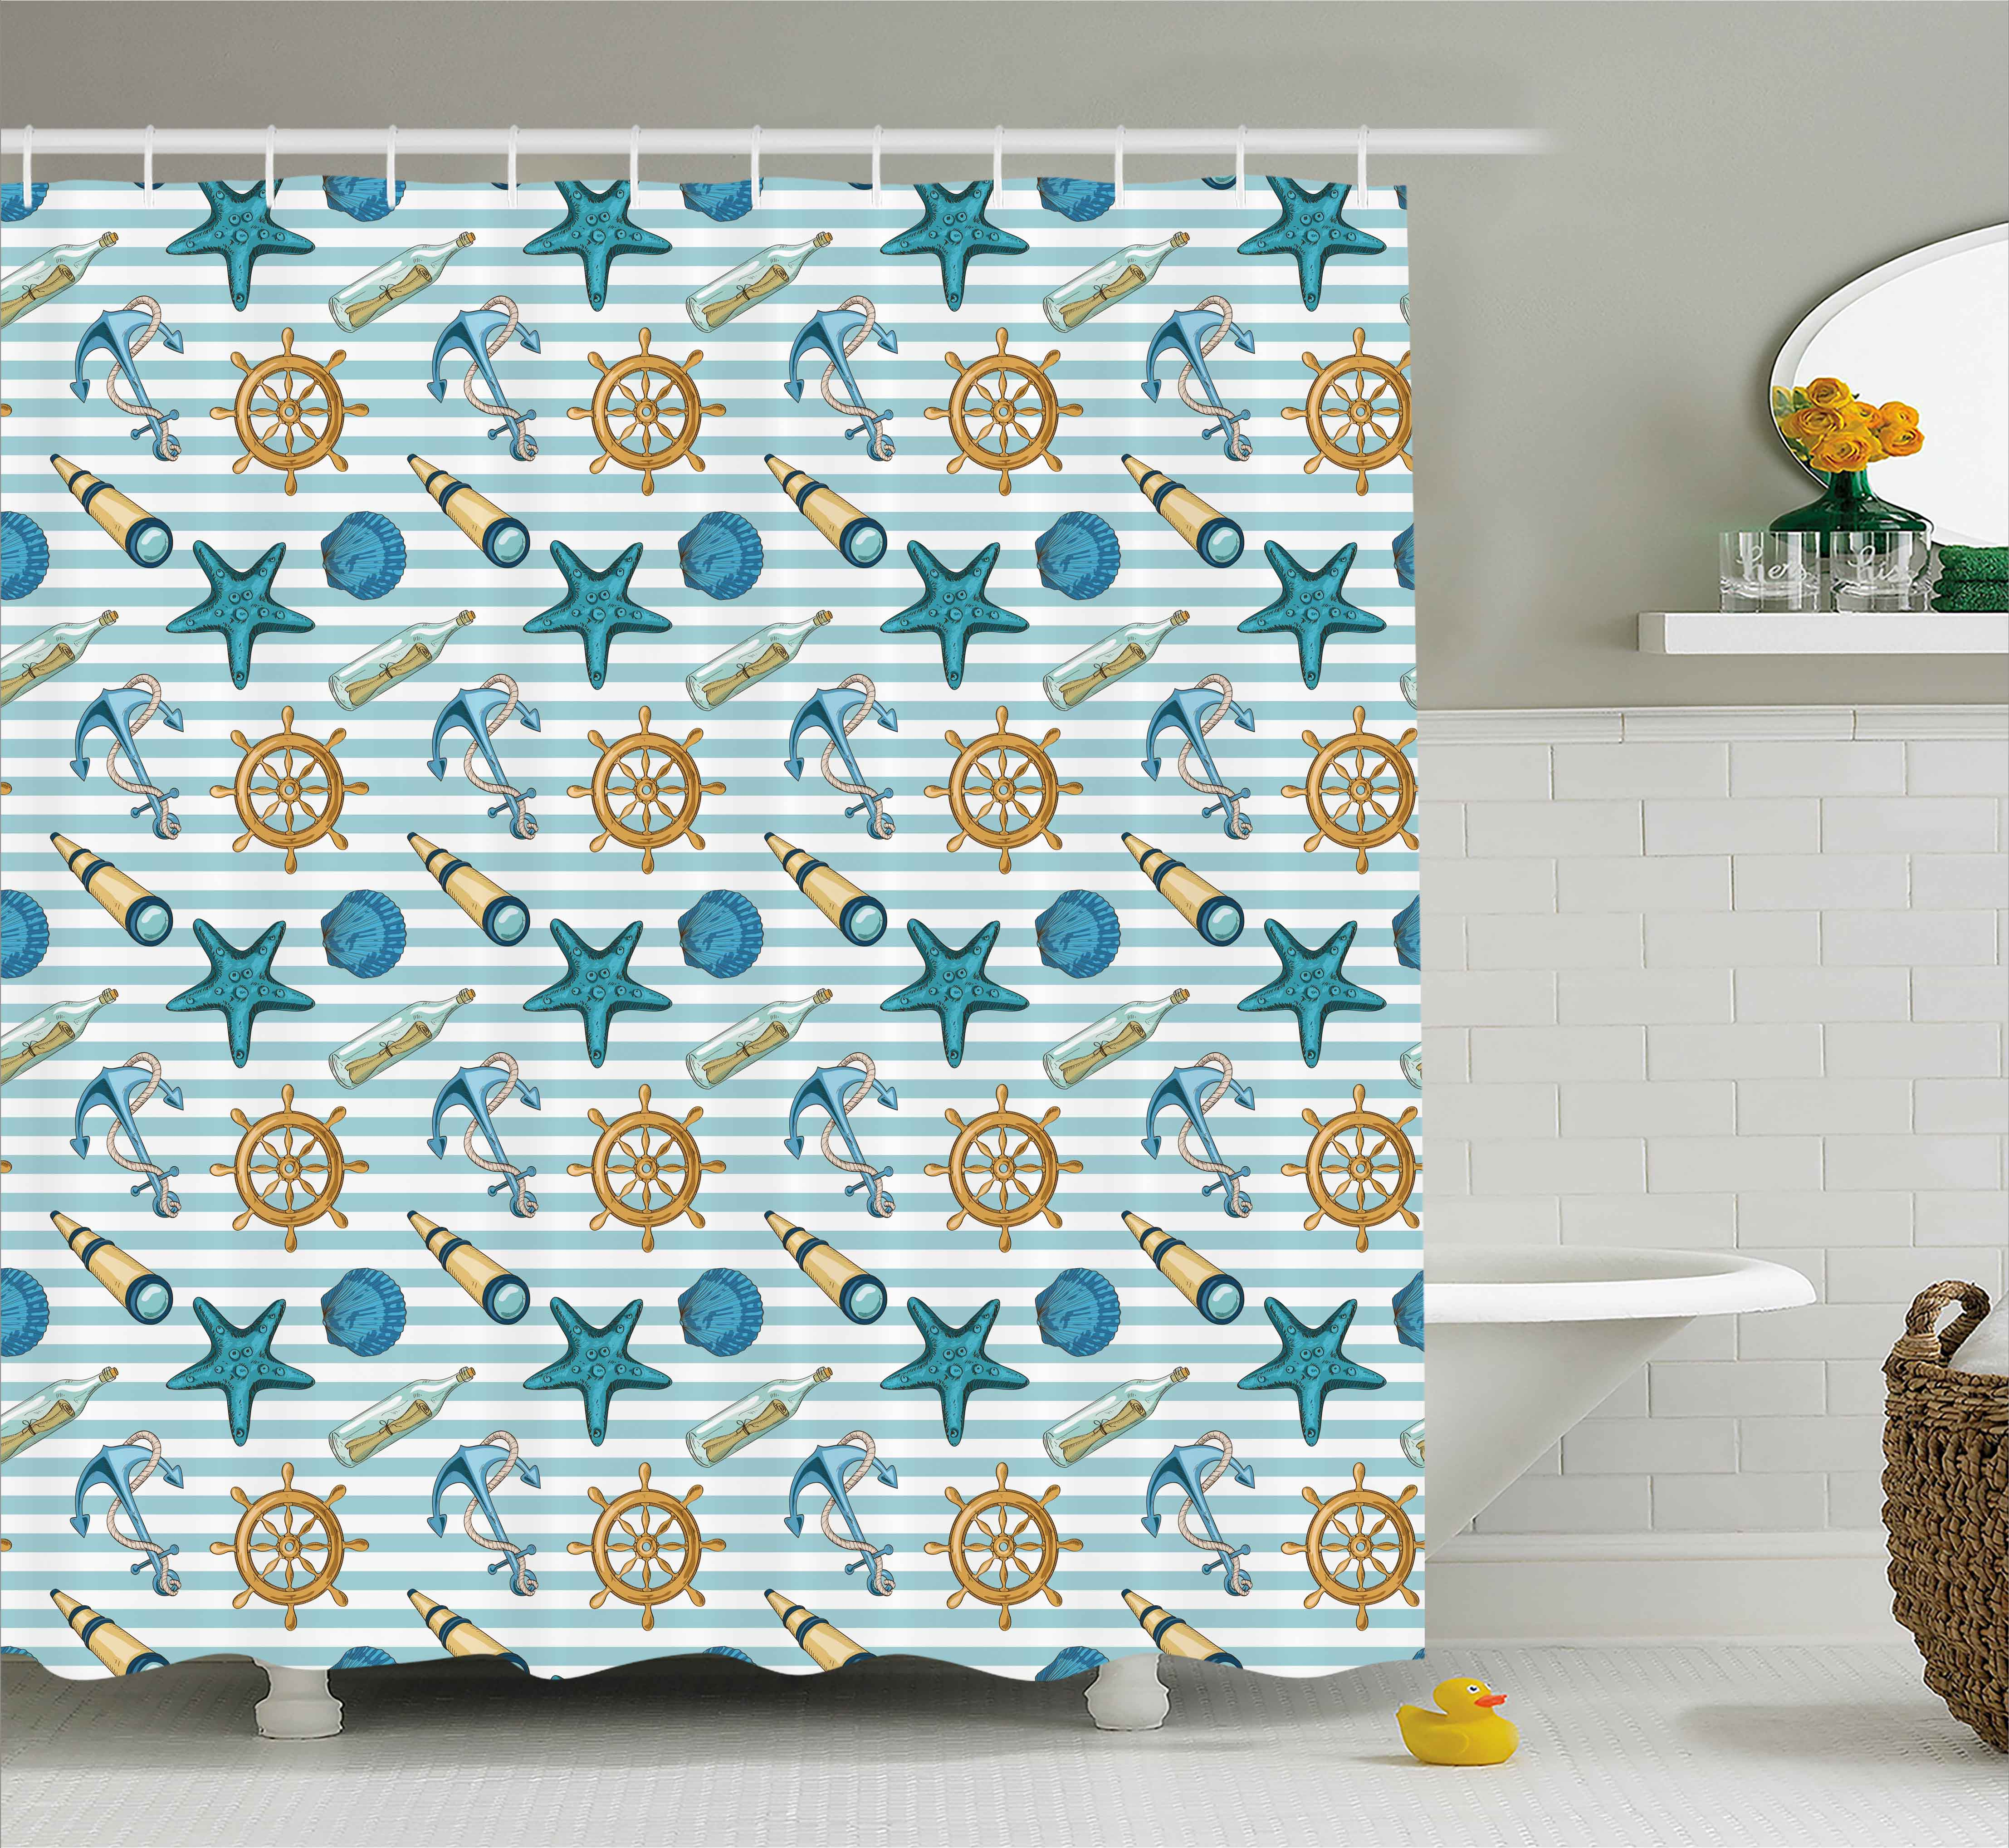 Nautical Decor Shower Curtain, Marine Sea Striped Background With Anchor  Wheel Starfish Seashell Figures,